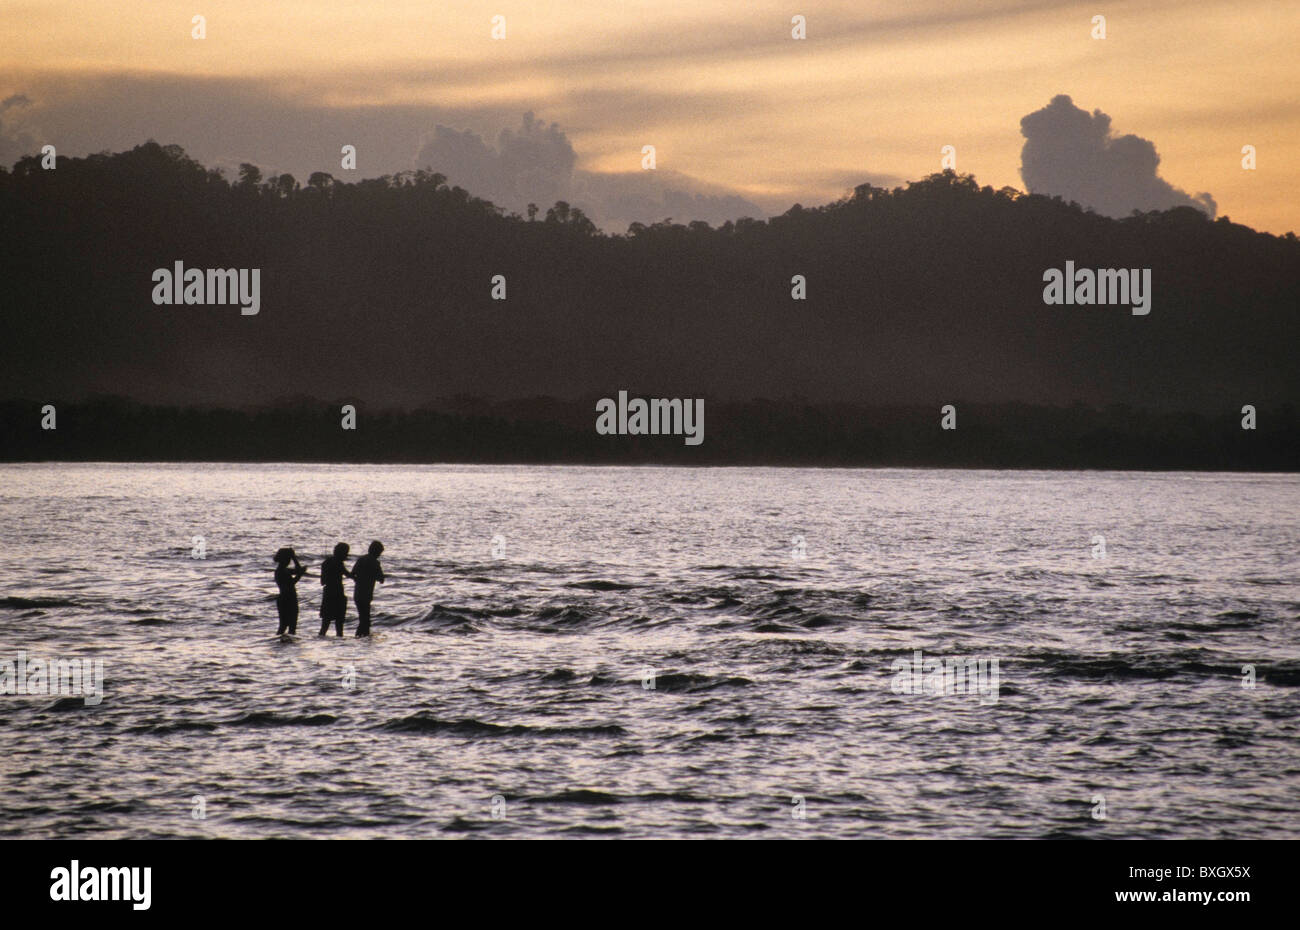 Costa Rica, puerto viejo, three people two men one woman fishing at sunset - Stock Image